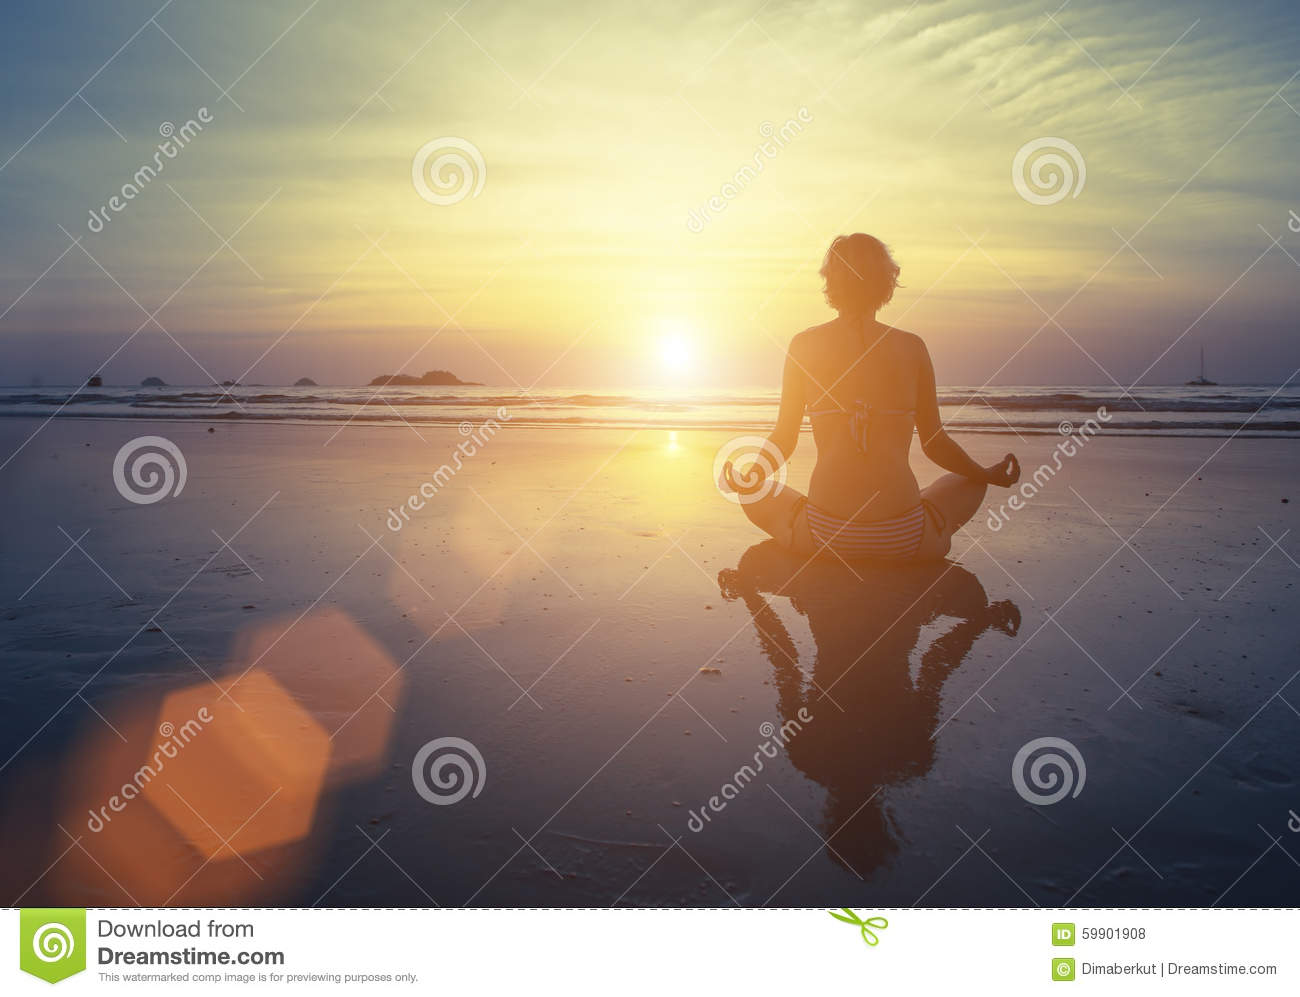 Yoga, fitness and healthy lifestyle. Silhouette meditation girl on the background of the stunning sea and sunset.